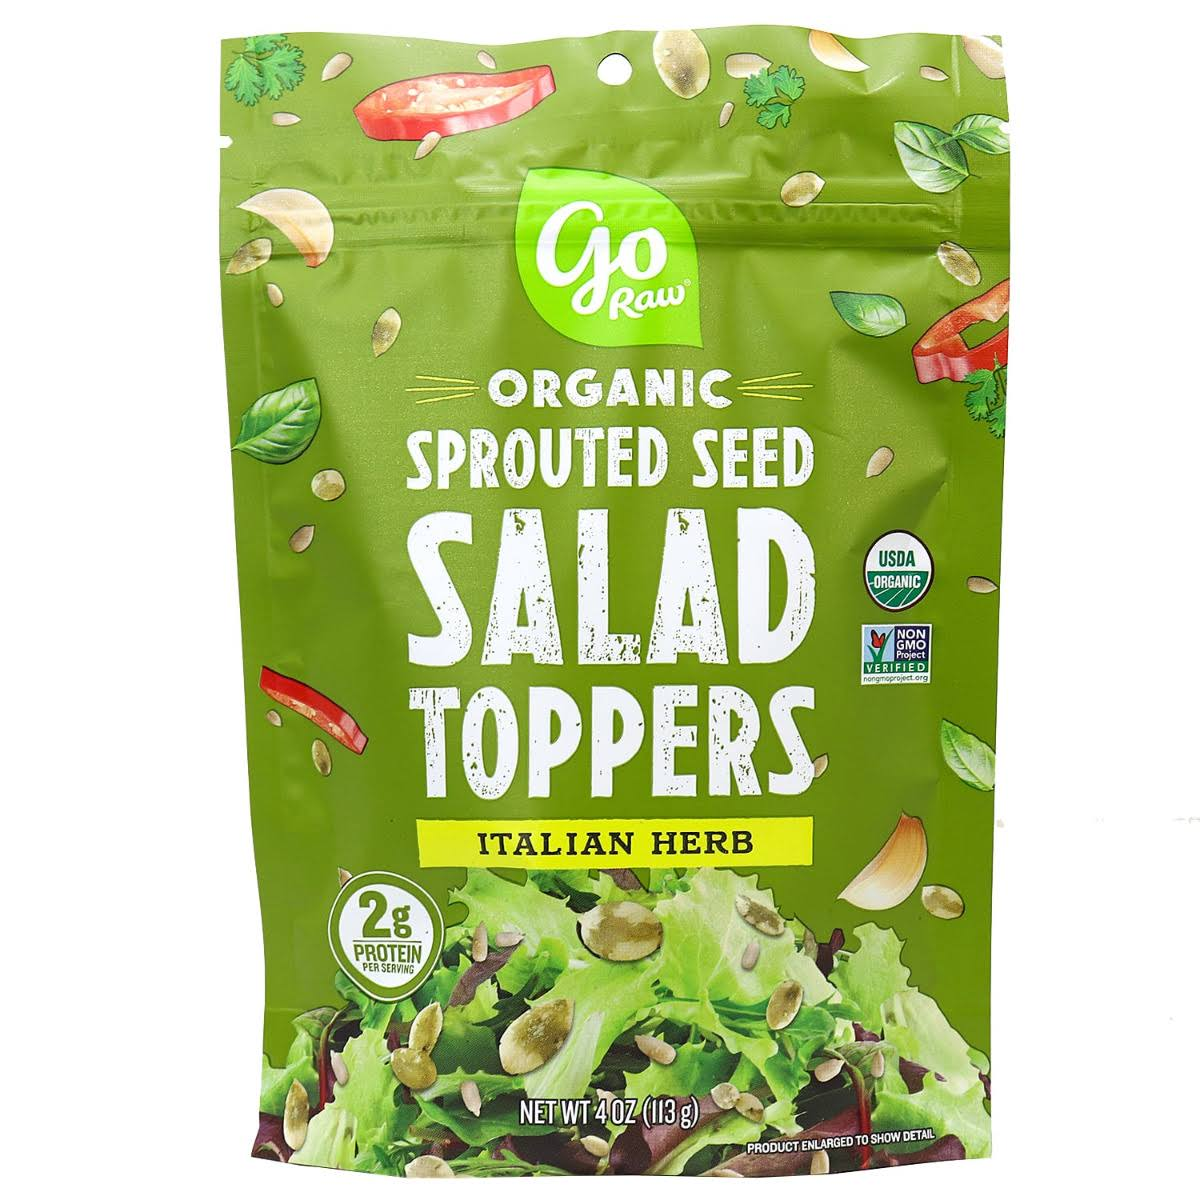 Go Raw Organic Sprouted Seed Salad Toppers Italian Herb 4 oz.